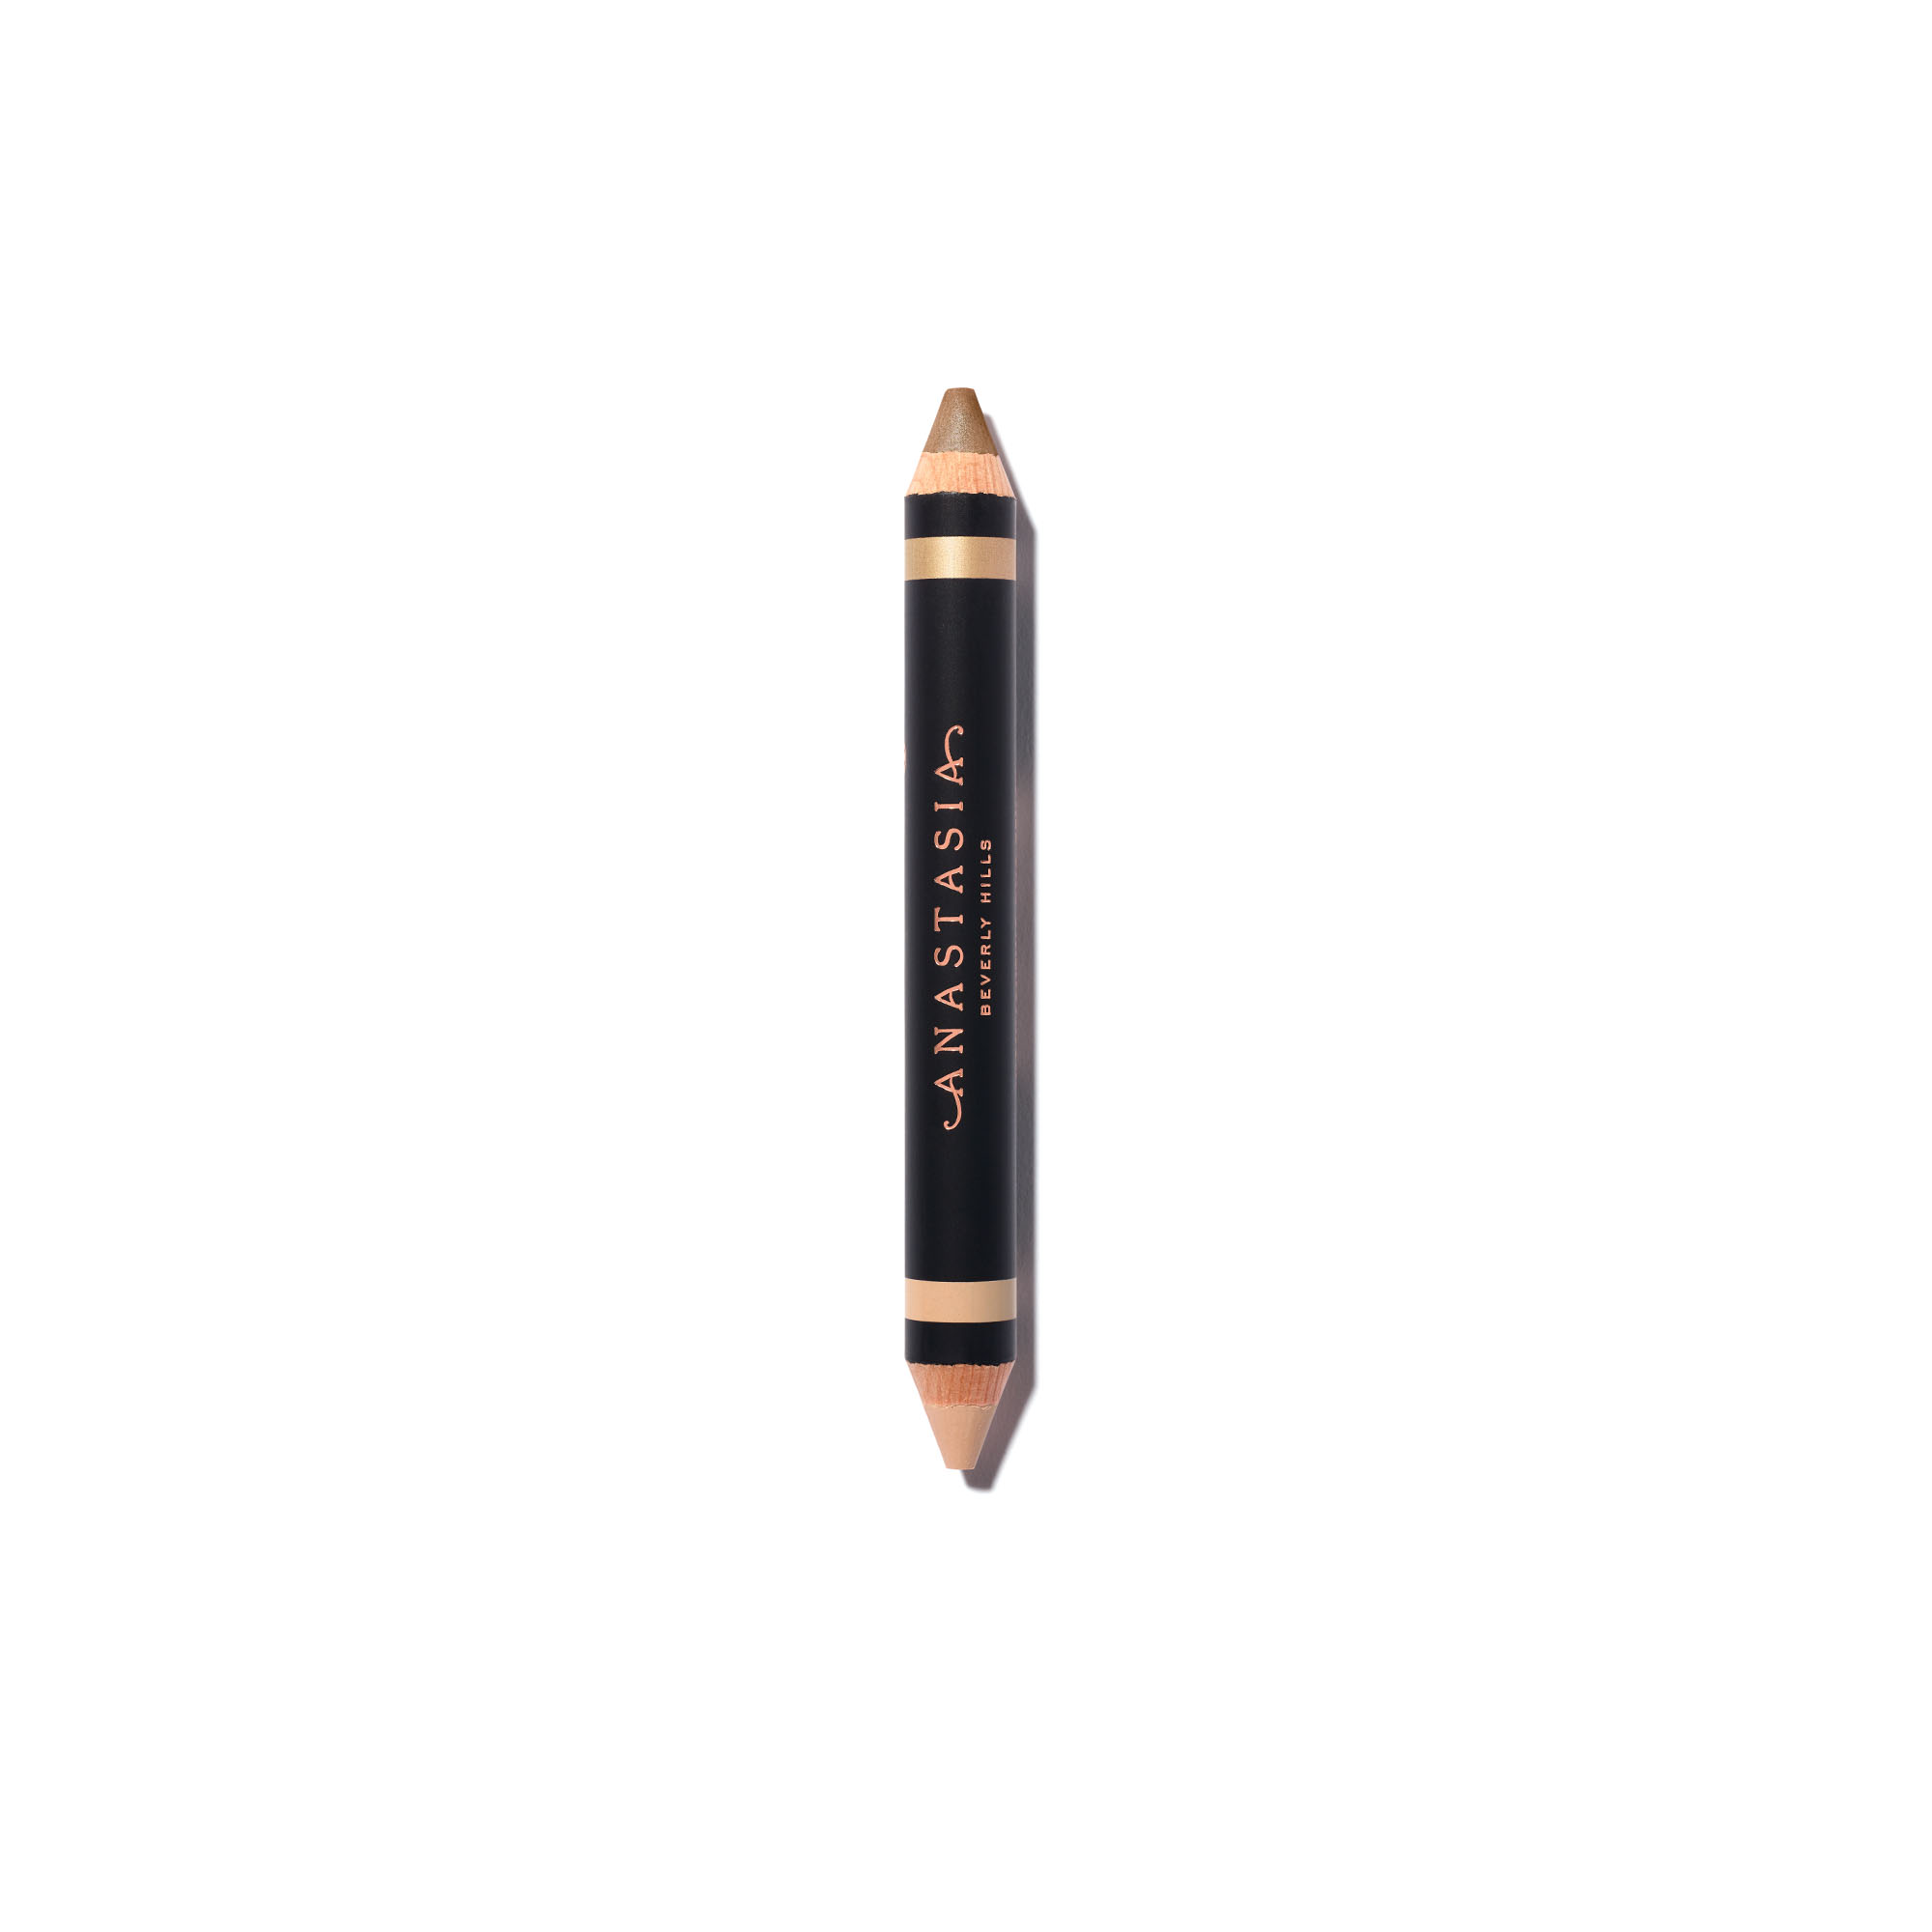 Highlighting Duo Pencil - Matte Shell/Lace Shimmer